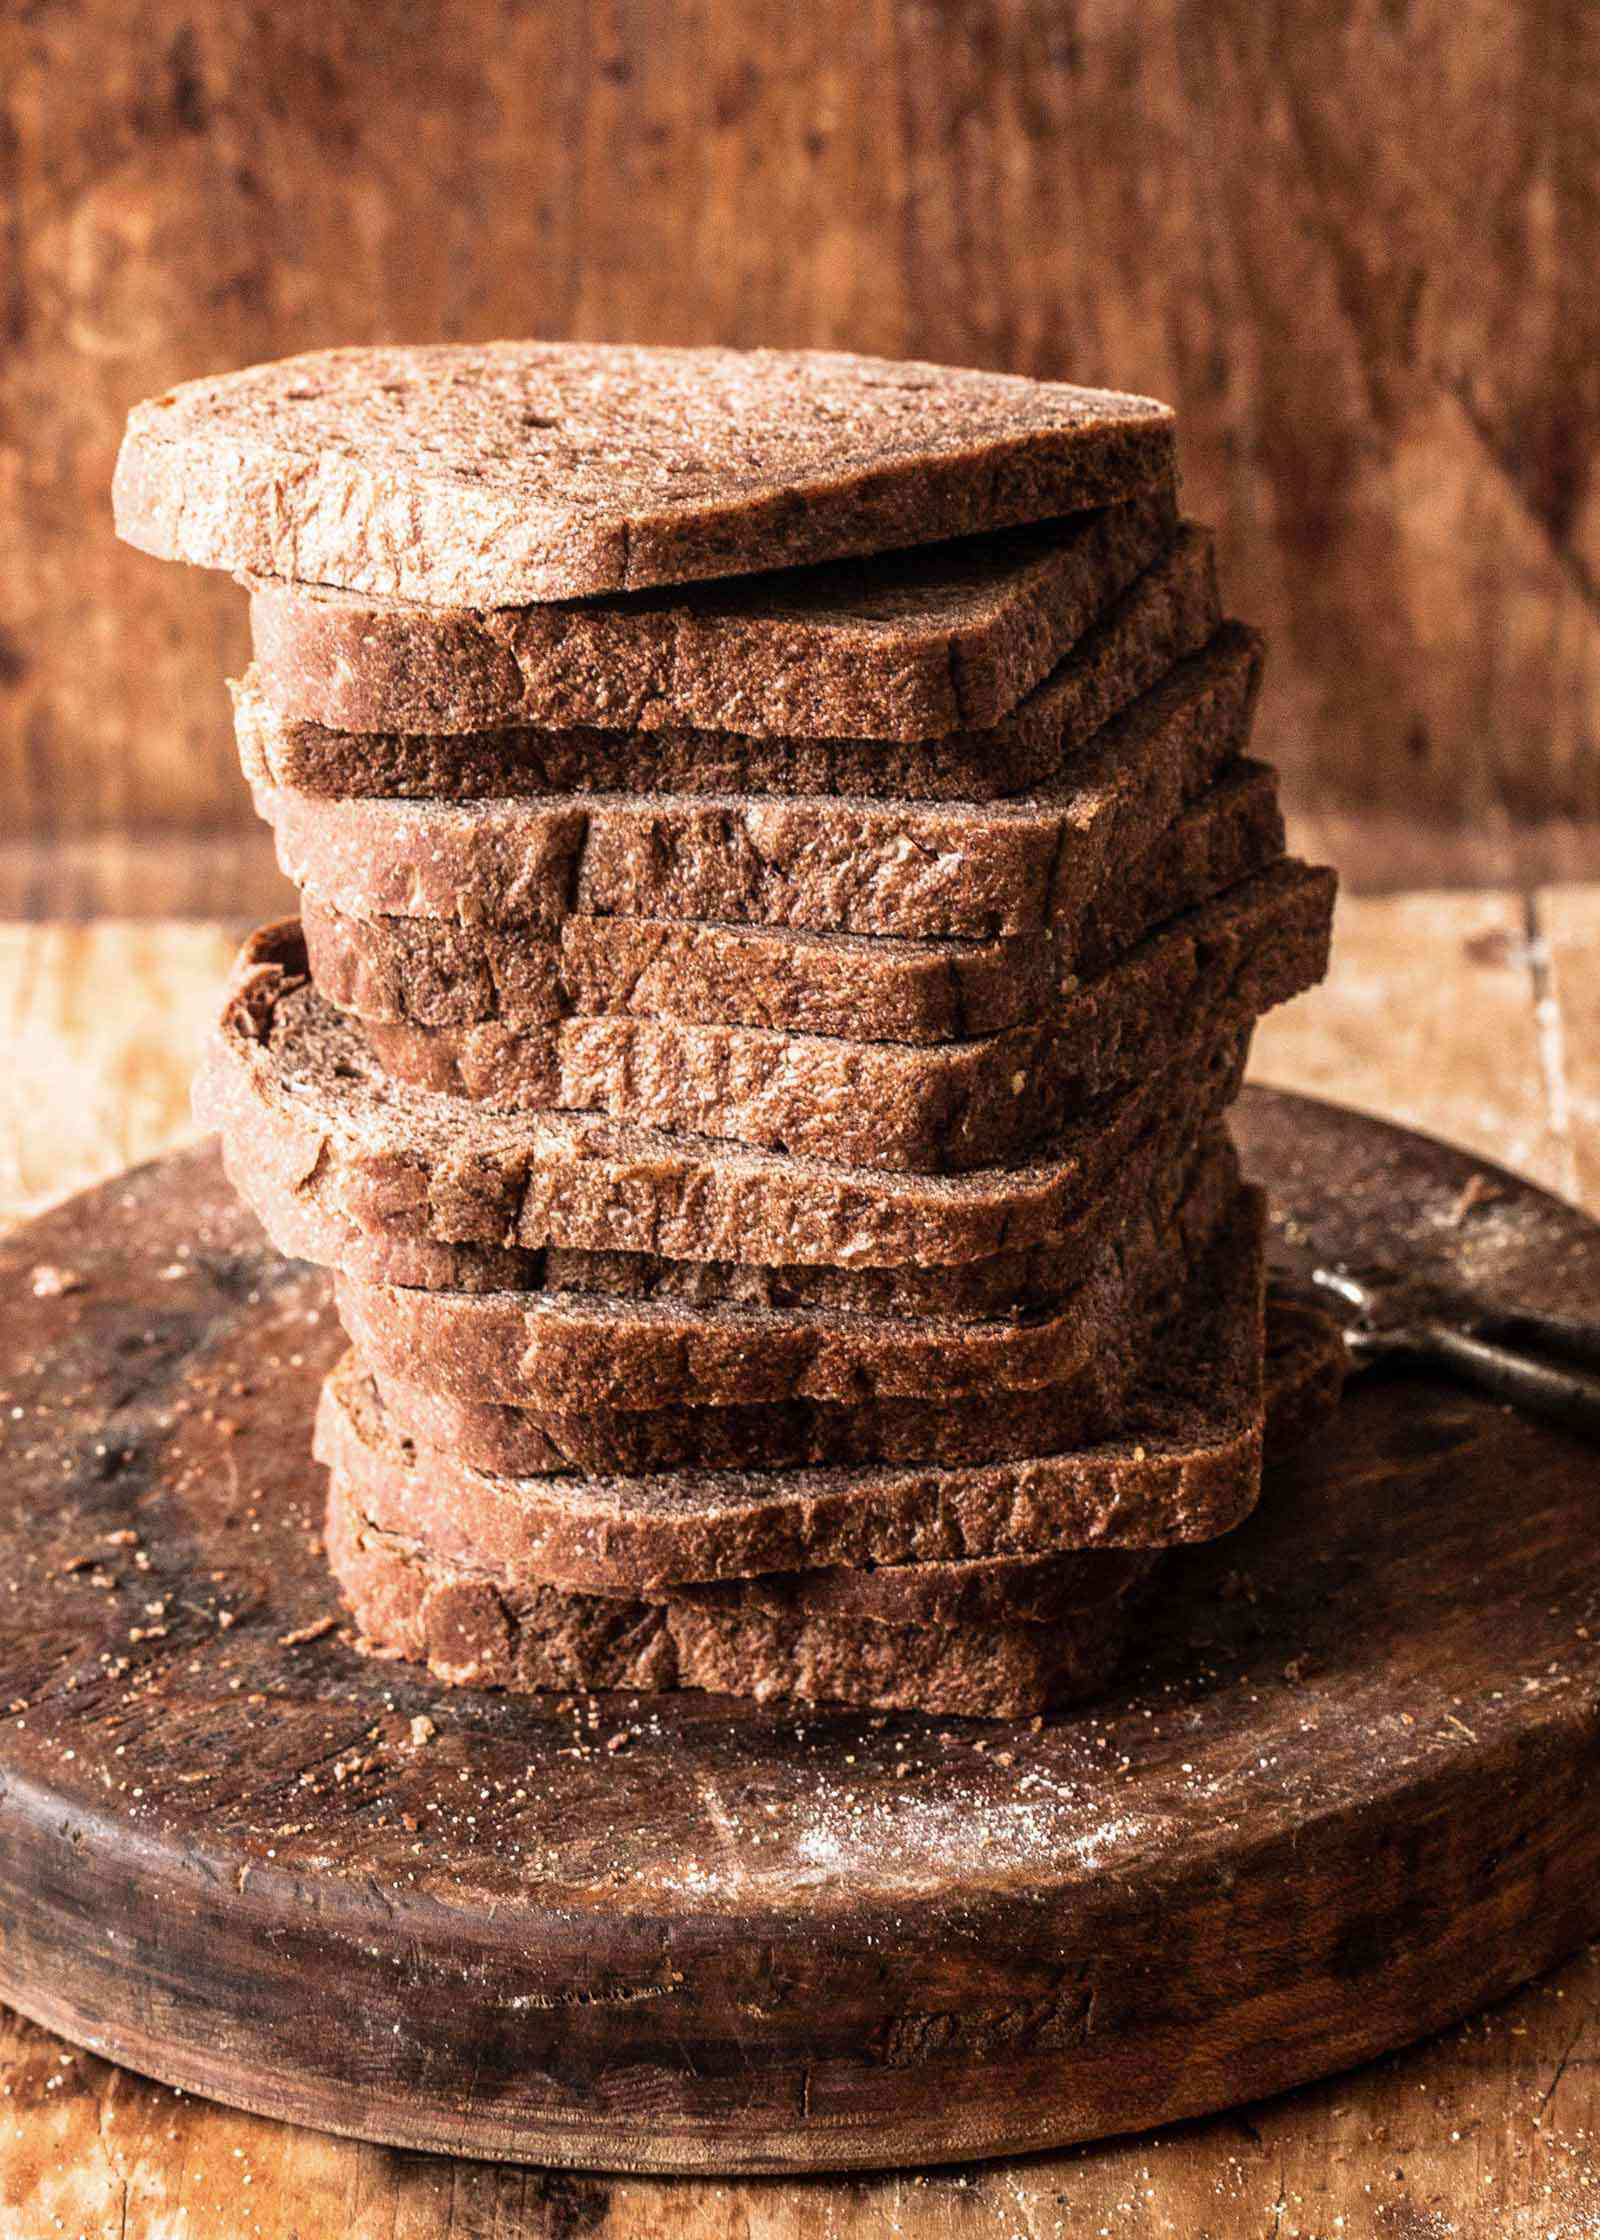 A stack of slicked homemade rye bread slices on a board